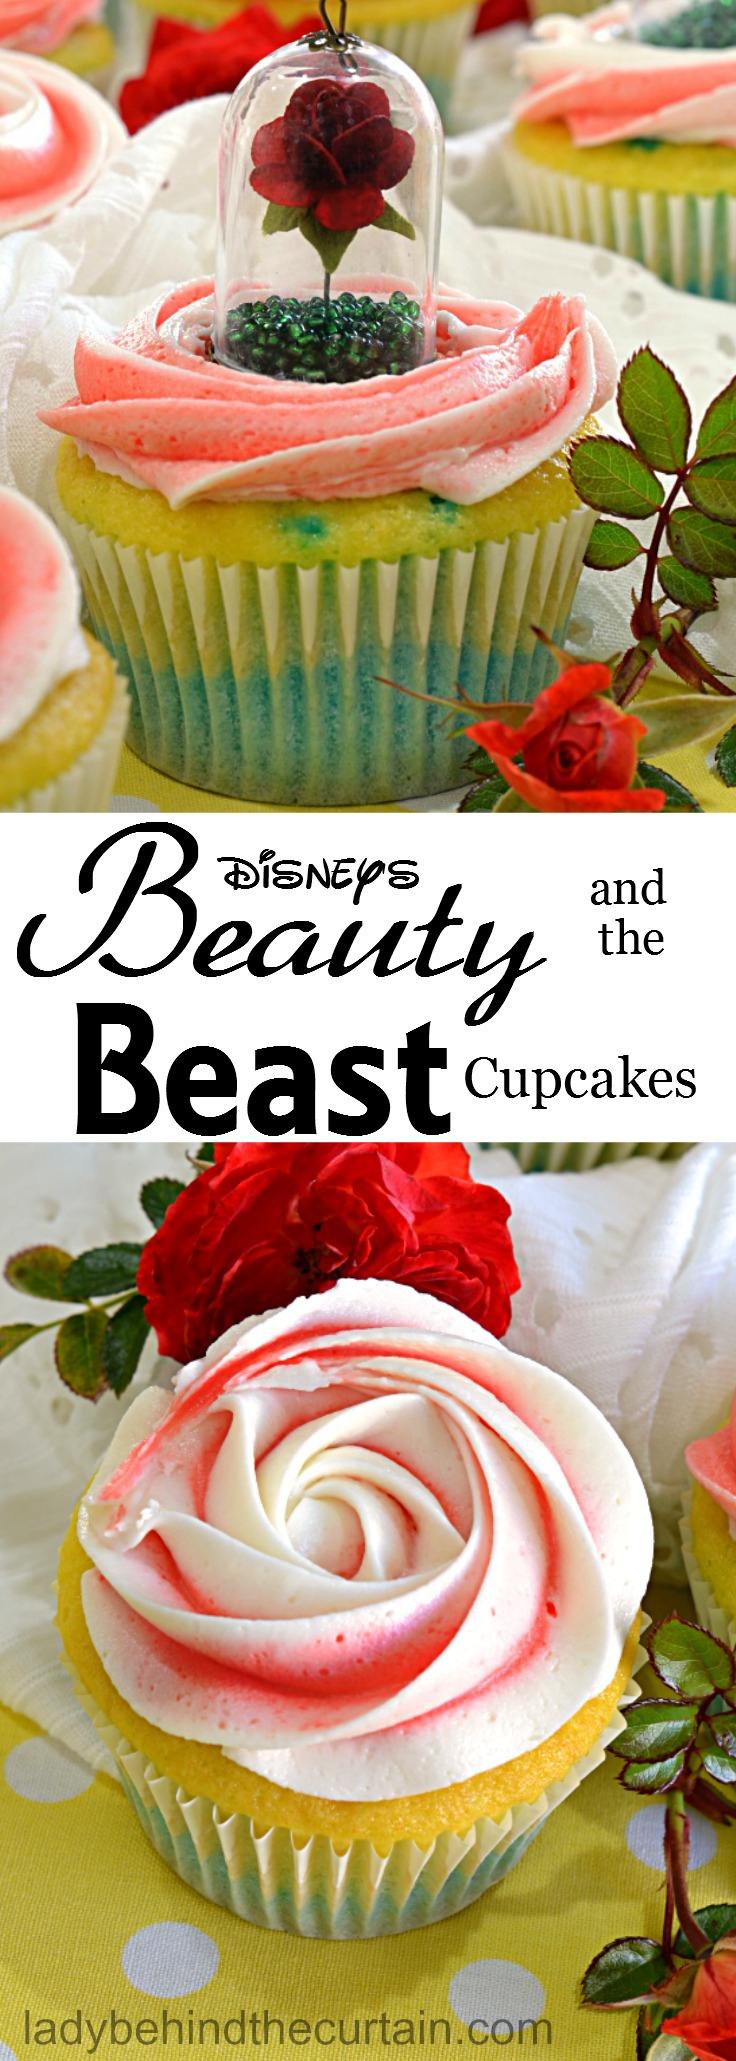 Disney's Beauty and the Beast Cupcakes | little girls birthday party cupcakes, rose cupcakes, disney cupcakes, disney movie cupcakes, blueberry lemonade cupcakes